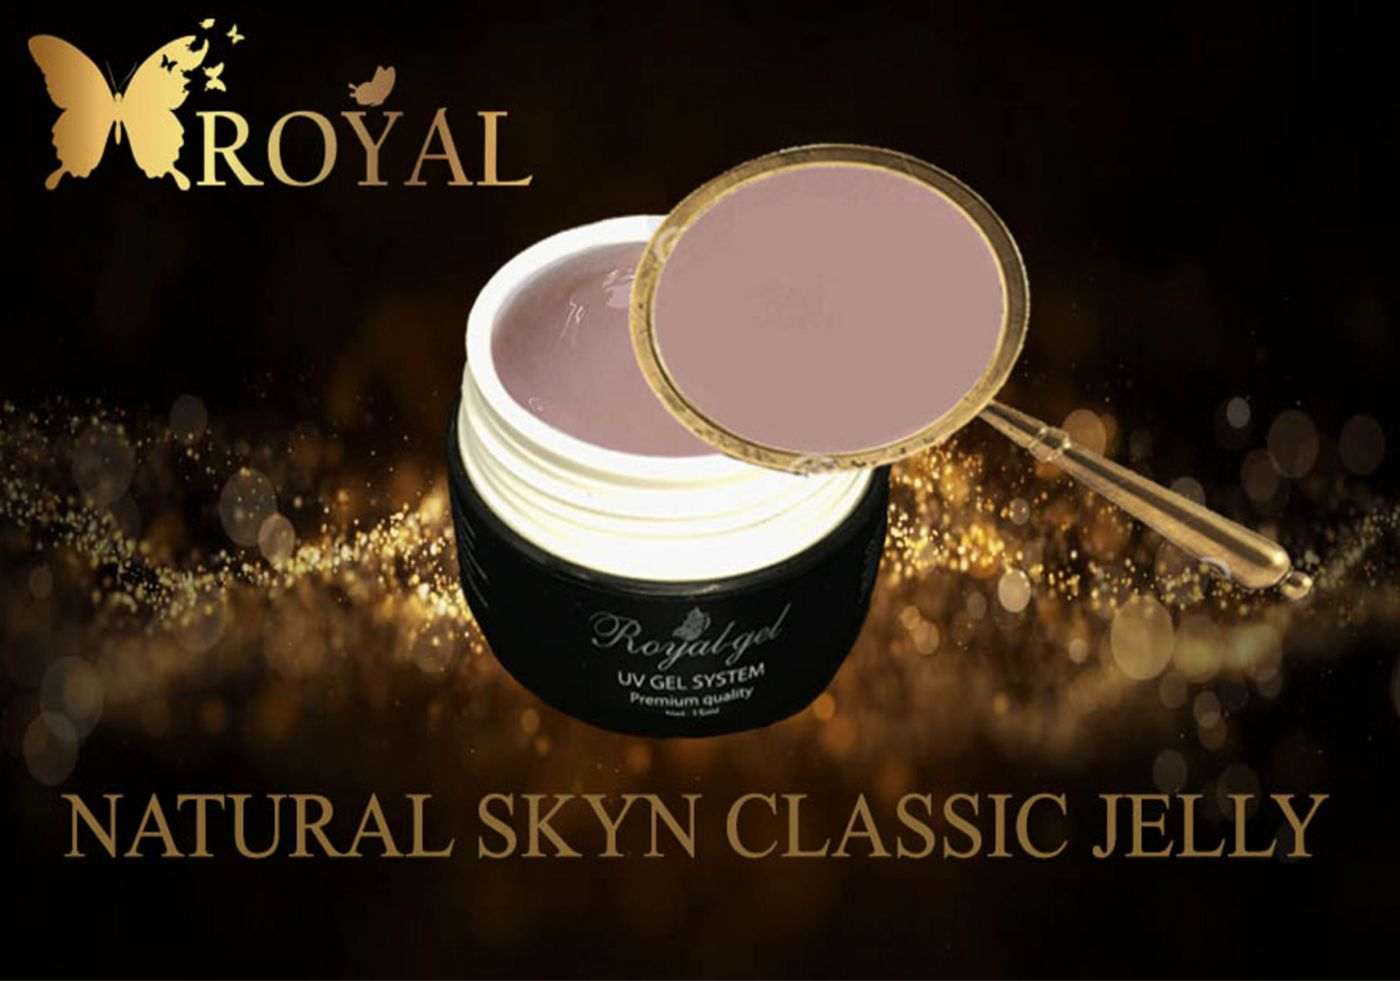 NATURAL SKYN CLASSIC JELLY ROYAL GEL